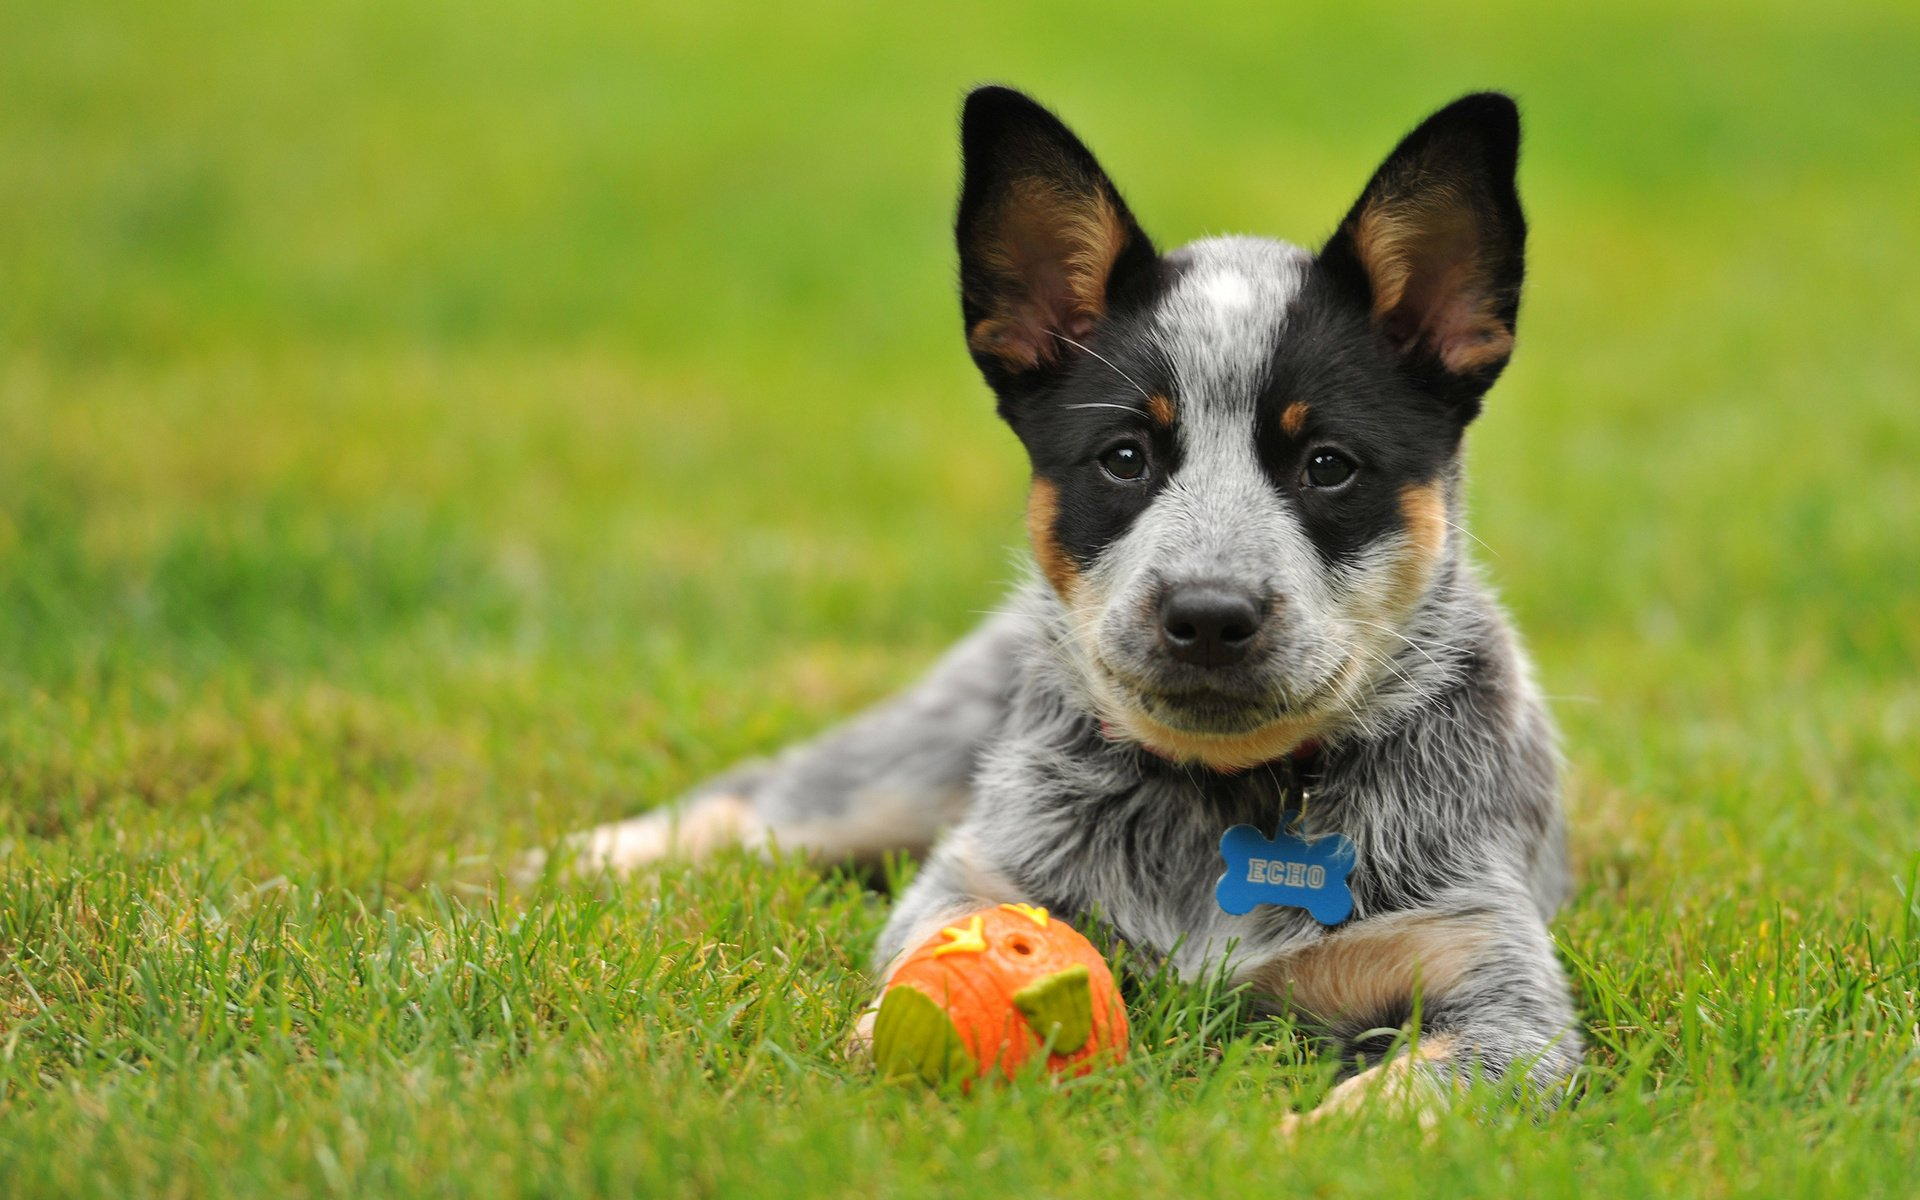 BEAUTIFUL BLUE HEELER PUP HD Wallpaper Background Image 1920x1200